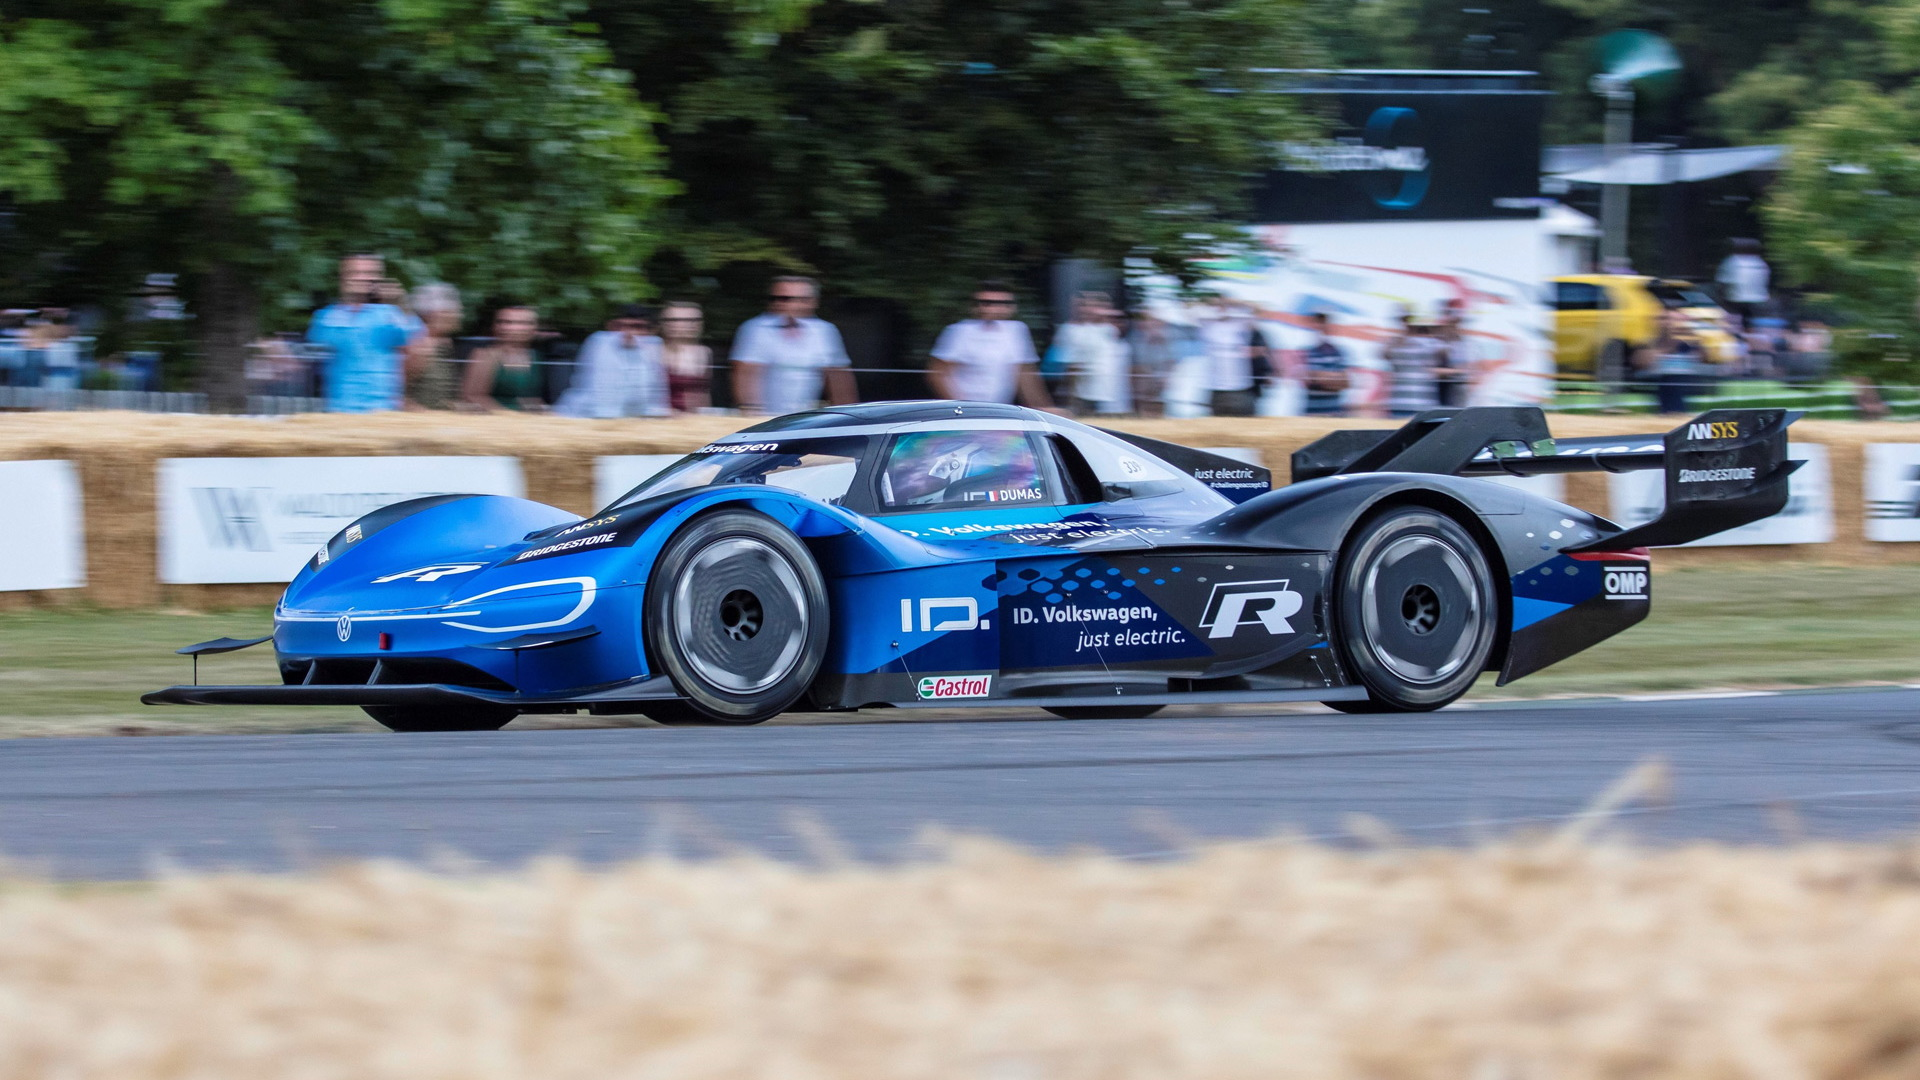 Electric VW sportscar shatters McLaren F1 hillclimb record at Goodwood - twice!